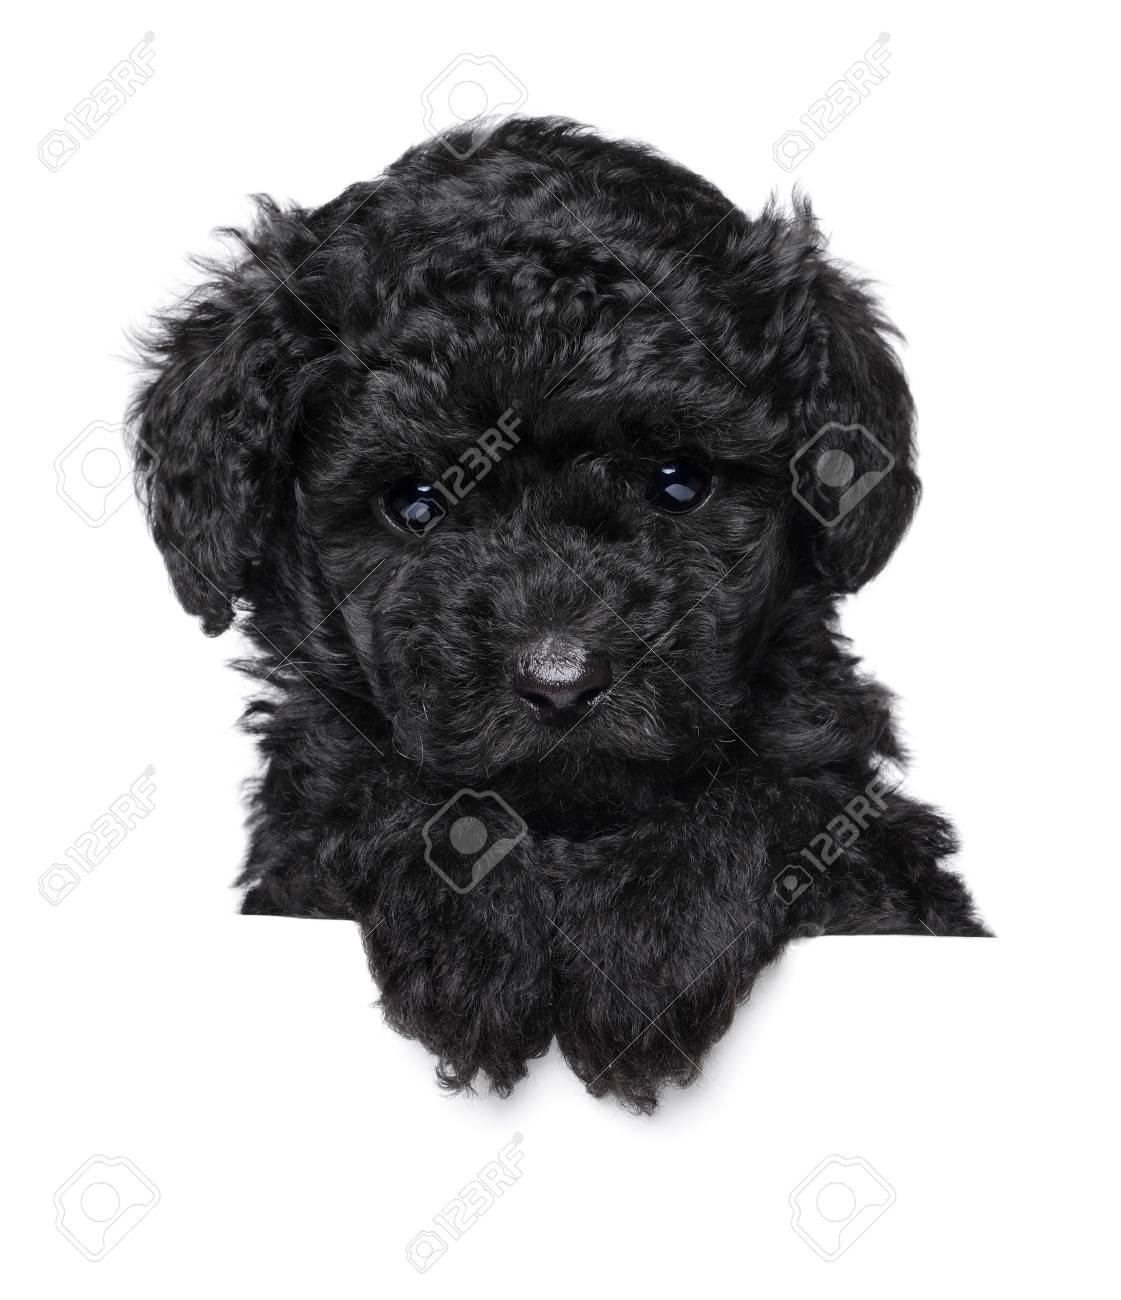 Black Toy Poodle Puppy Above Banner Isolated On White Background Stock Photo Picture And Royalty Free Image Image 87996899